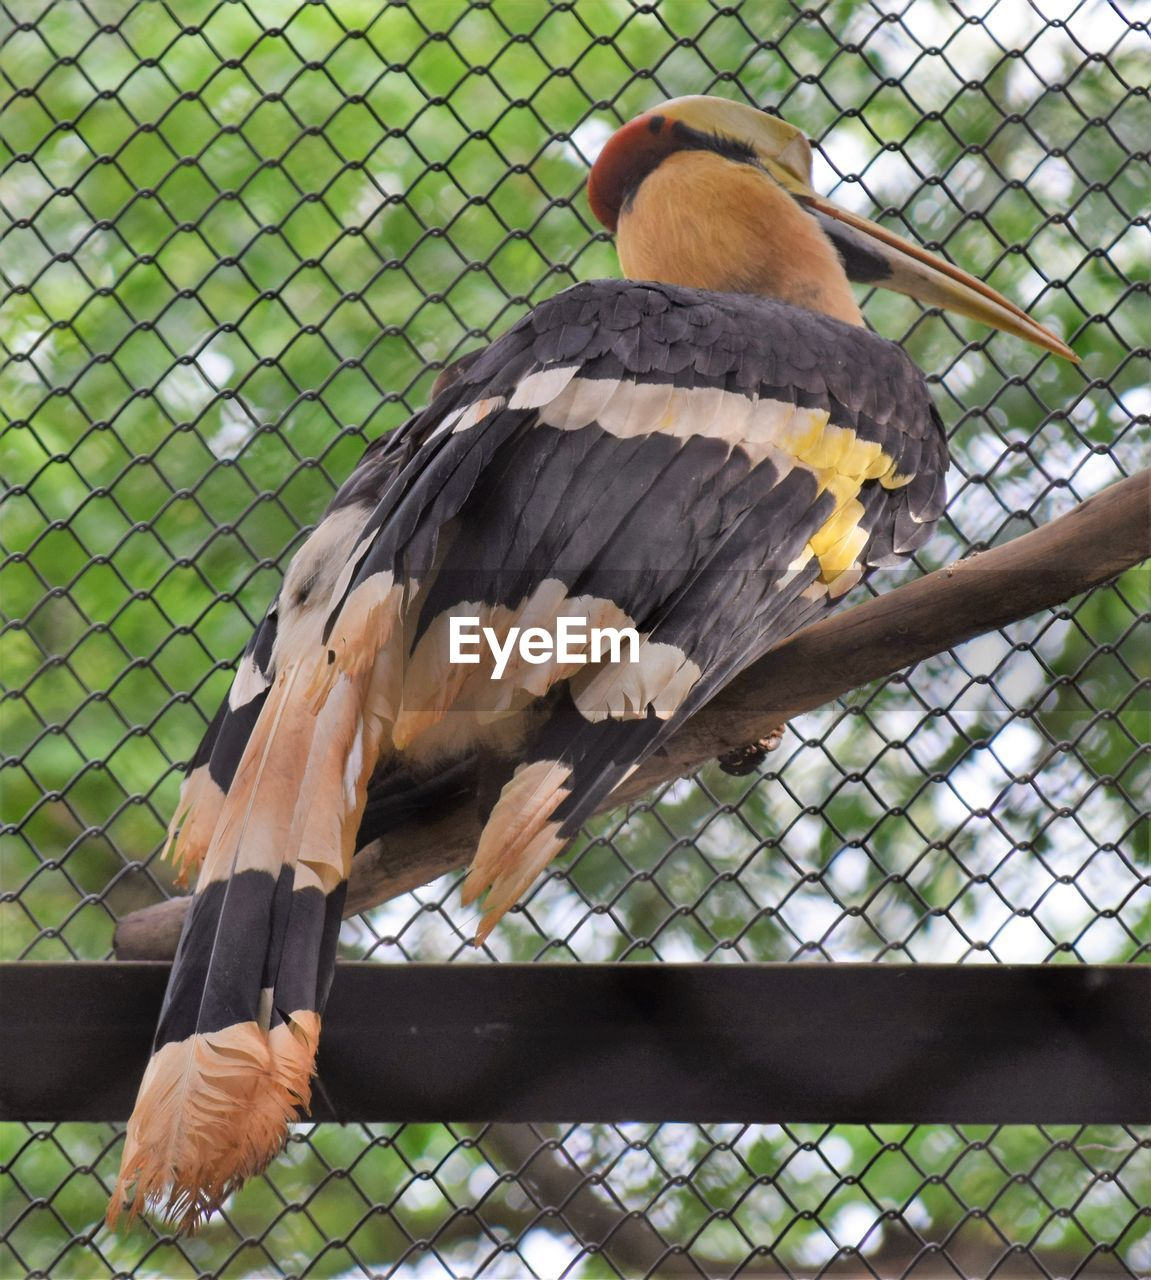 bird, vertebrate, animal, animal themes, animal wildlife, animals in the wild, one animal, animals in captivity, bird of prey, fence, perching, chainlink fence, barrier, boundary, zoo, focus on foreground, day, metal, no people, nature, outdoors, beak